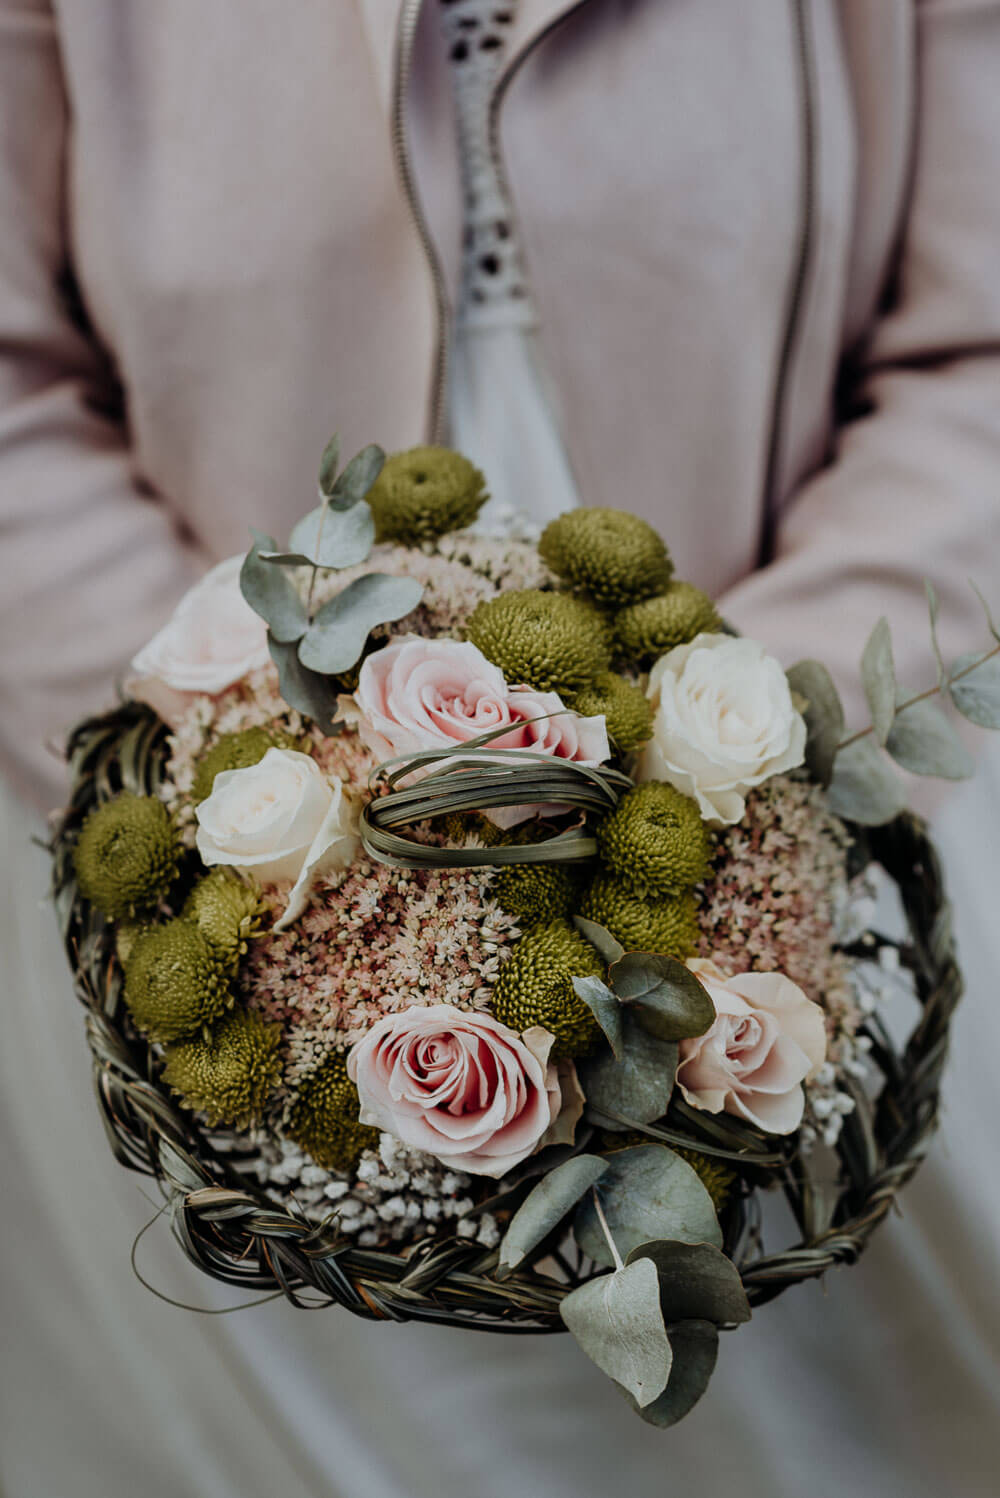 alps elopement wedding, bridal bouquet with roses